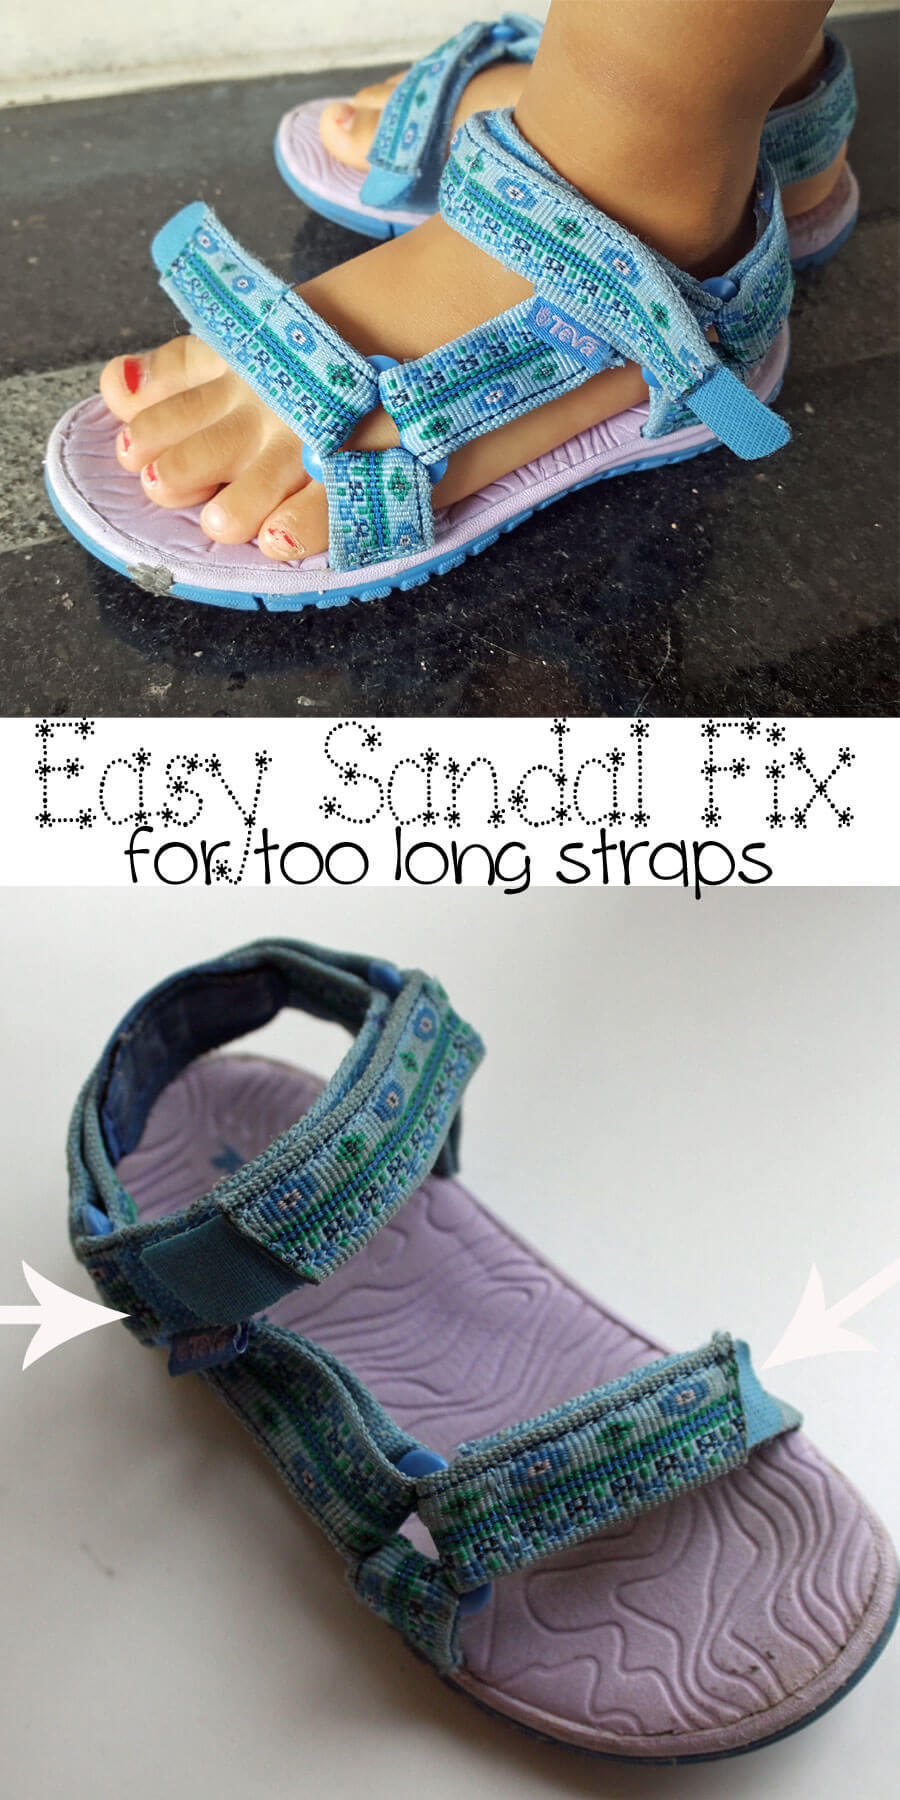 quick-sandal-fix-for-too-long-straps-and-easy-sewing-project-DIY-from-Nap-Time-Creations